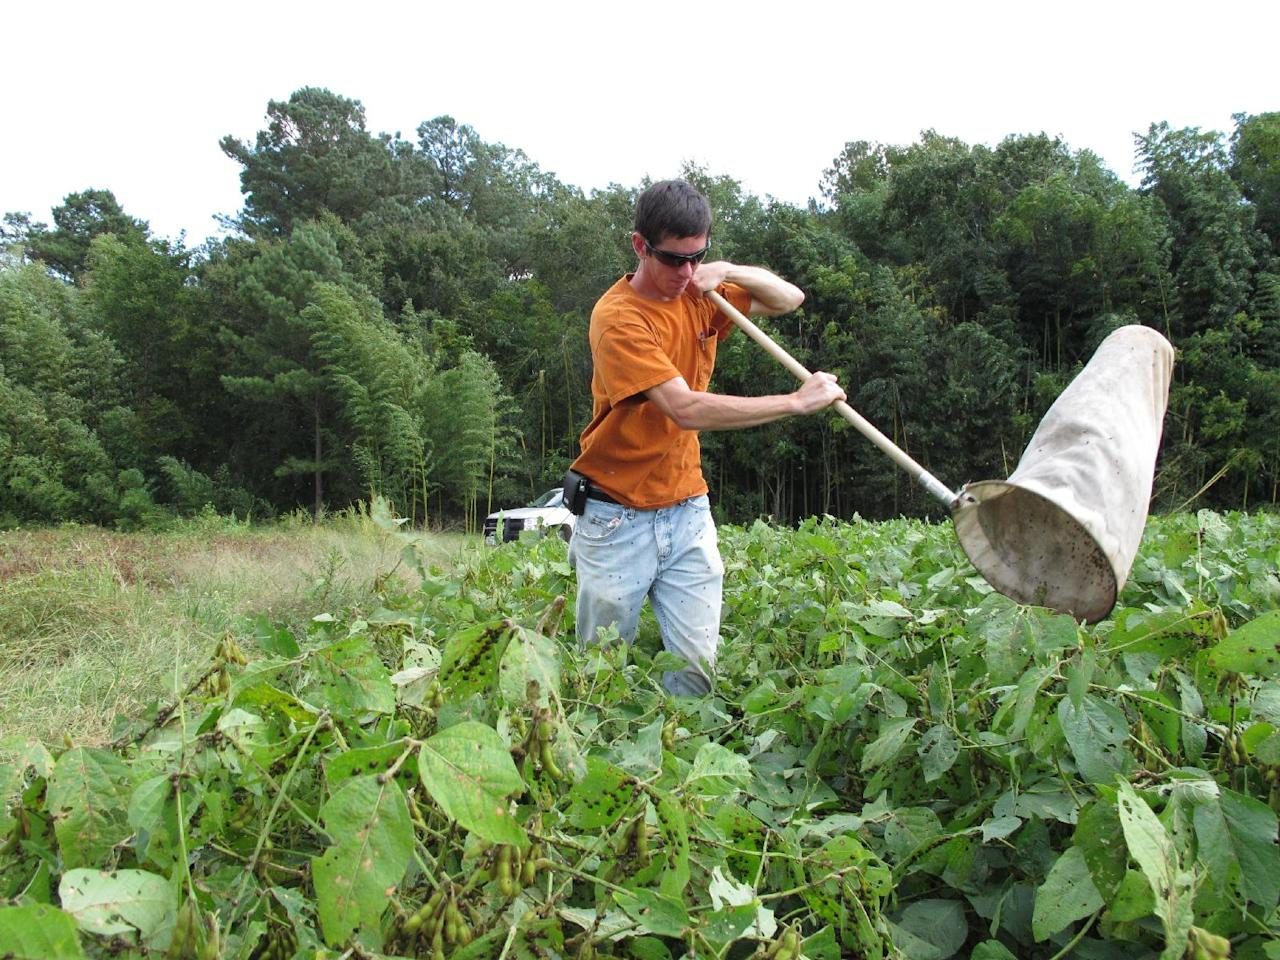 """In this Sept. 30, 2011 photo, Clemson University doctoral student Nick Seiter sweeps for """"kudzu bugs"""" at a test plot in Blackville, S.C. Seiter is studying the invasive Asian bug, which is wreaking havoc on soybean crops. (AP Photo/Allen Breed)"""